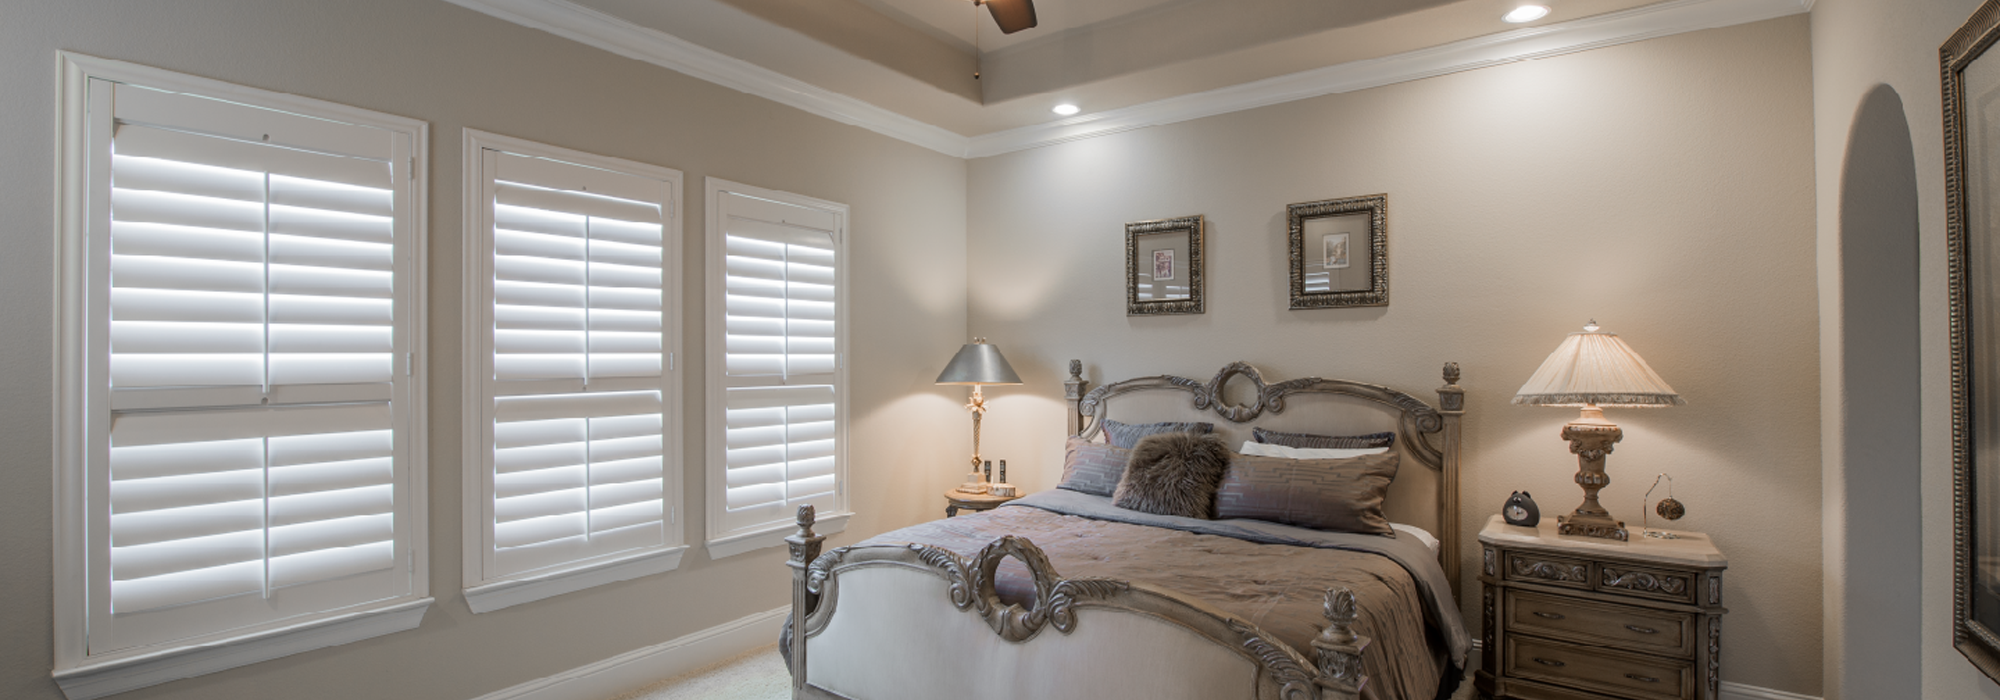 Beautiful Shutters for Master Bedroom at Southwest Blinds and Shutters